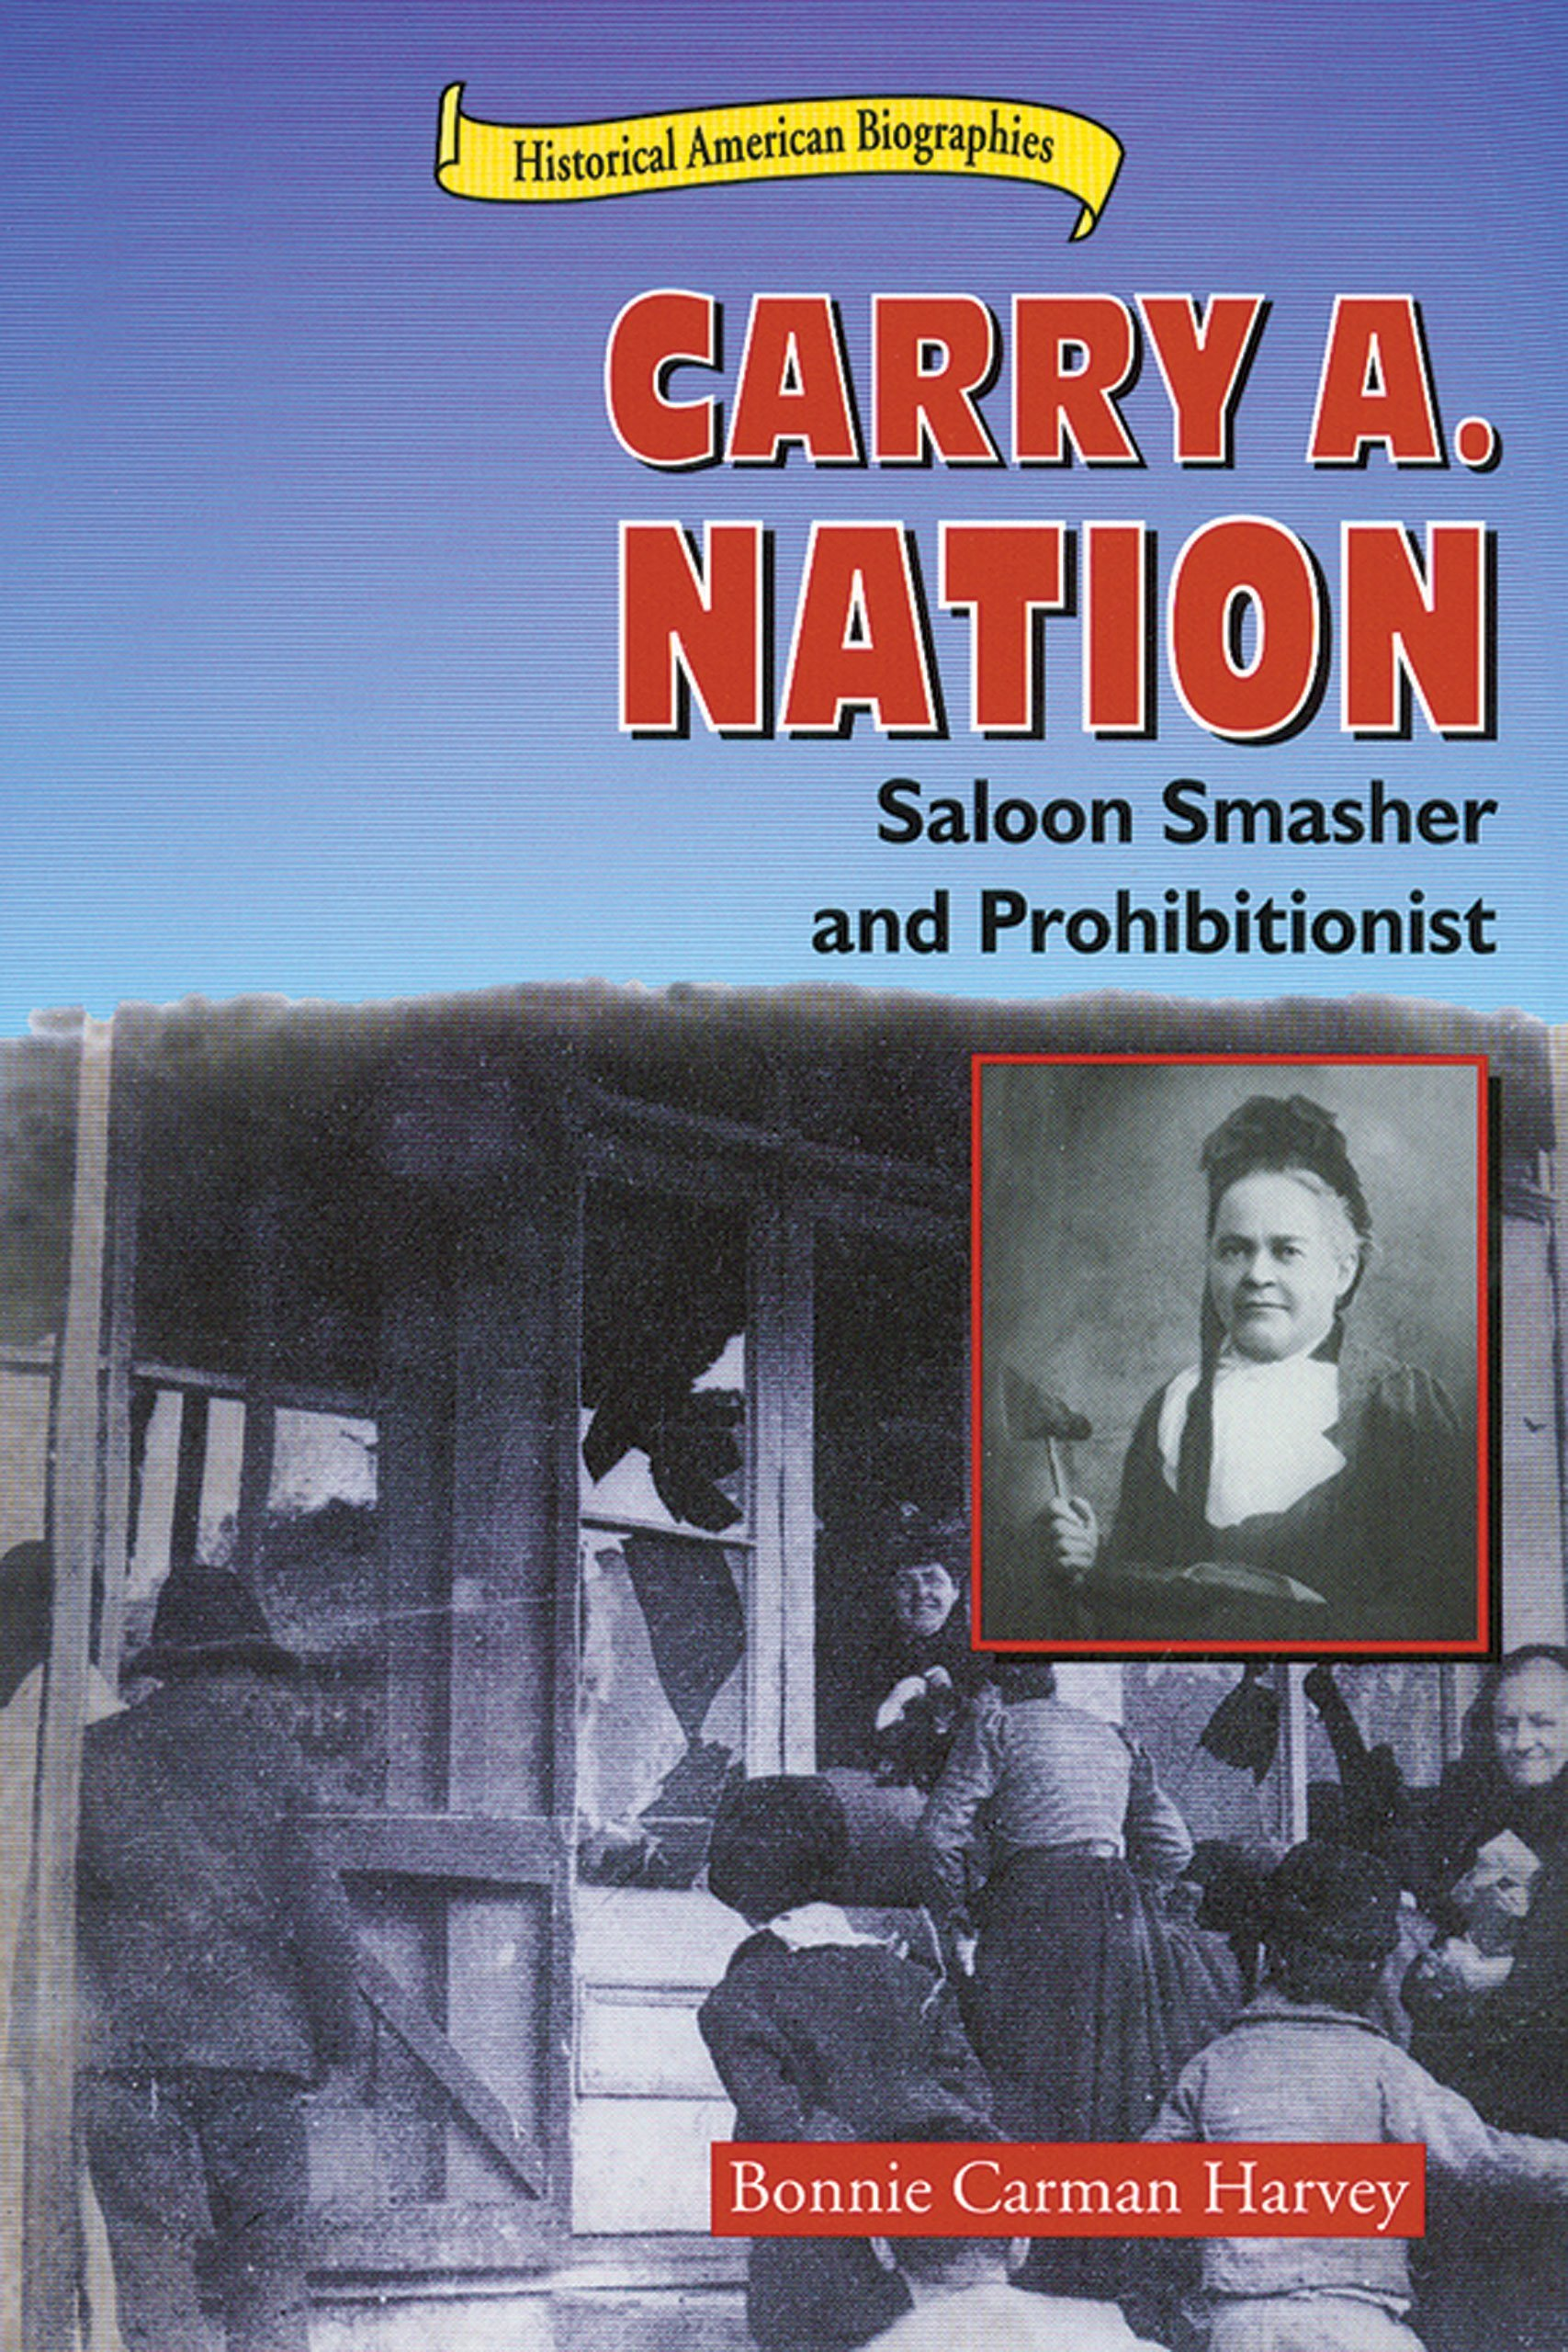 Download Carry A. Nation: Saloon Smasher and Prohibitionist (Historical American Biographies) pdf